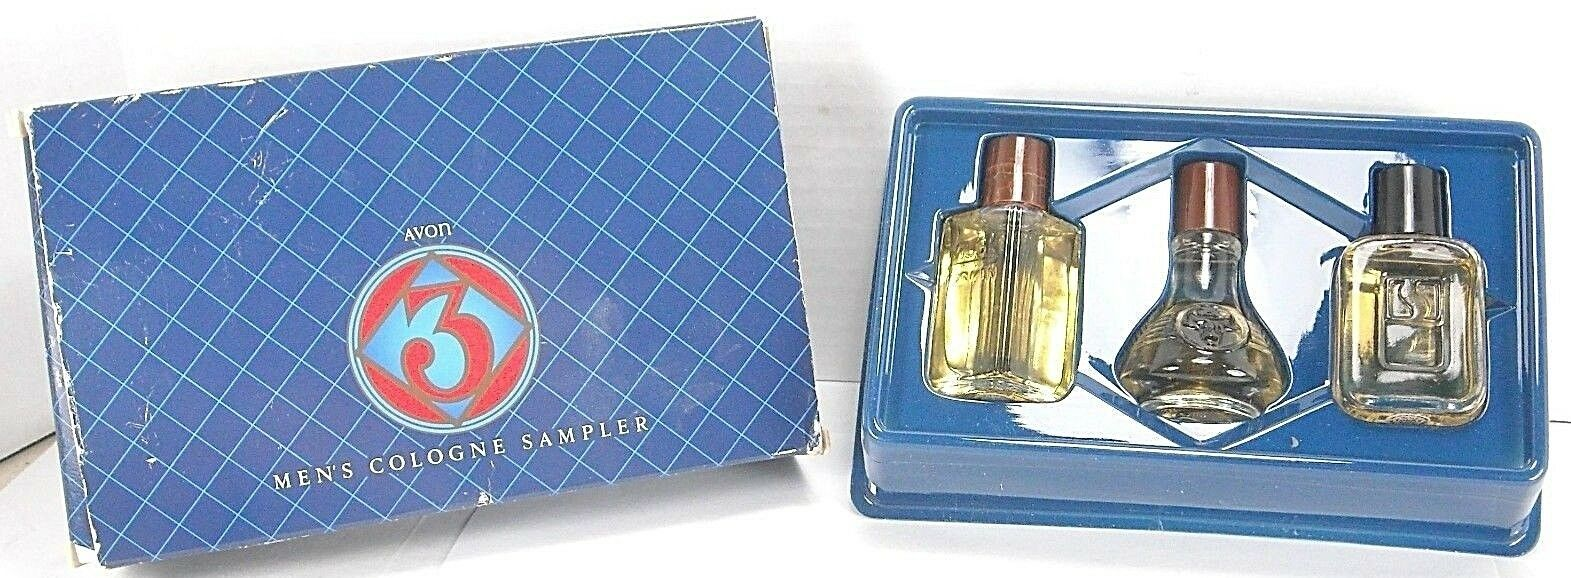 Avon Men's Cologne Sampler Set NIB